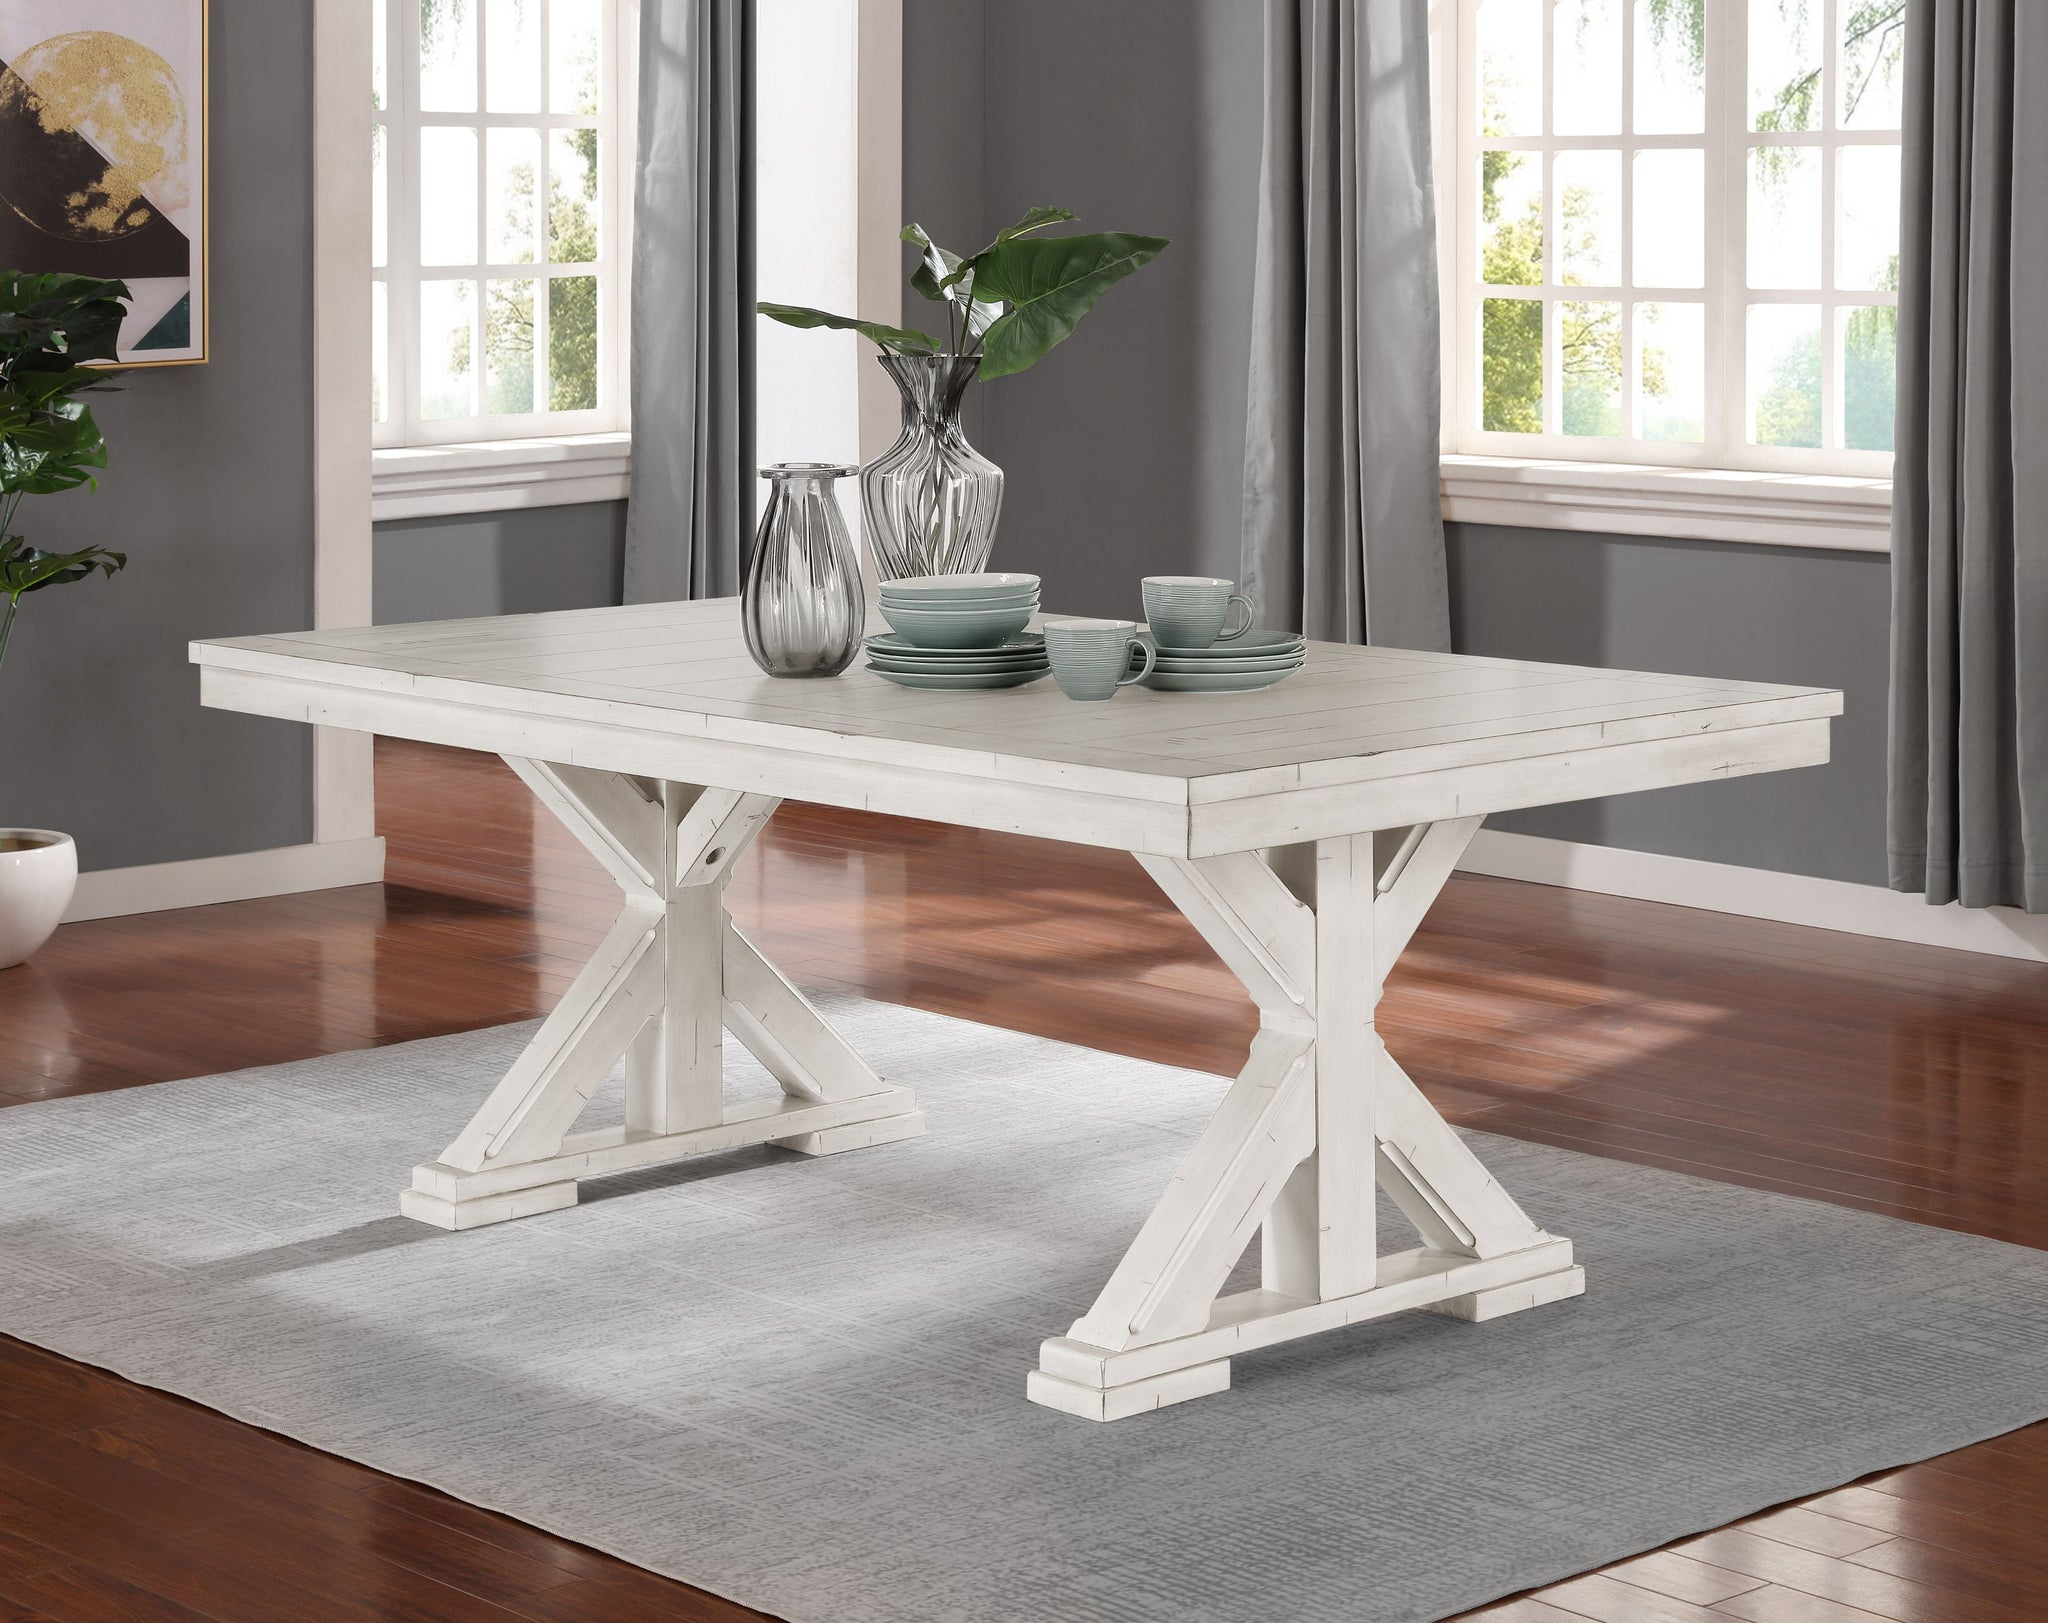 Florina Antique White Wood Trestle Dining Table